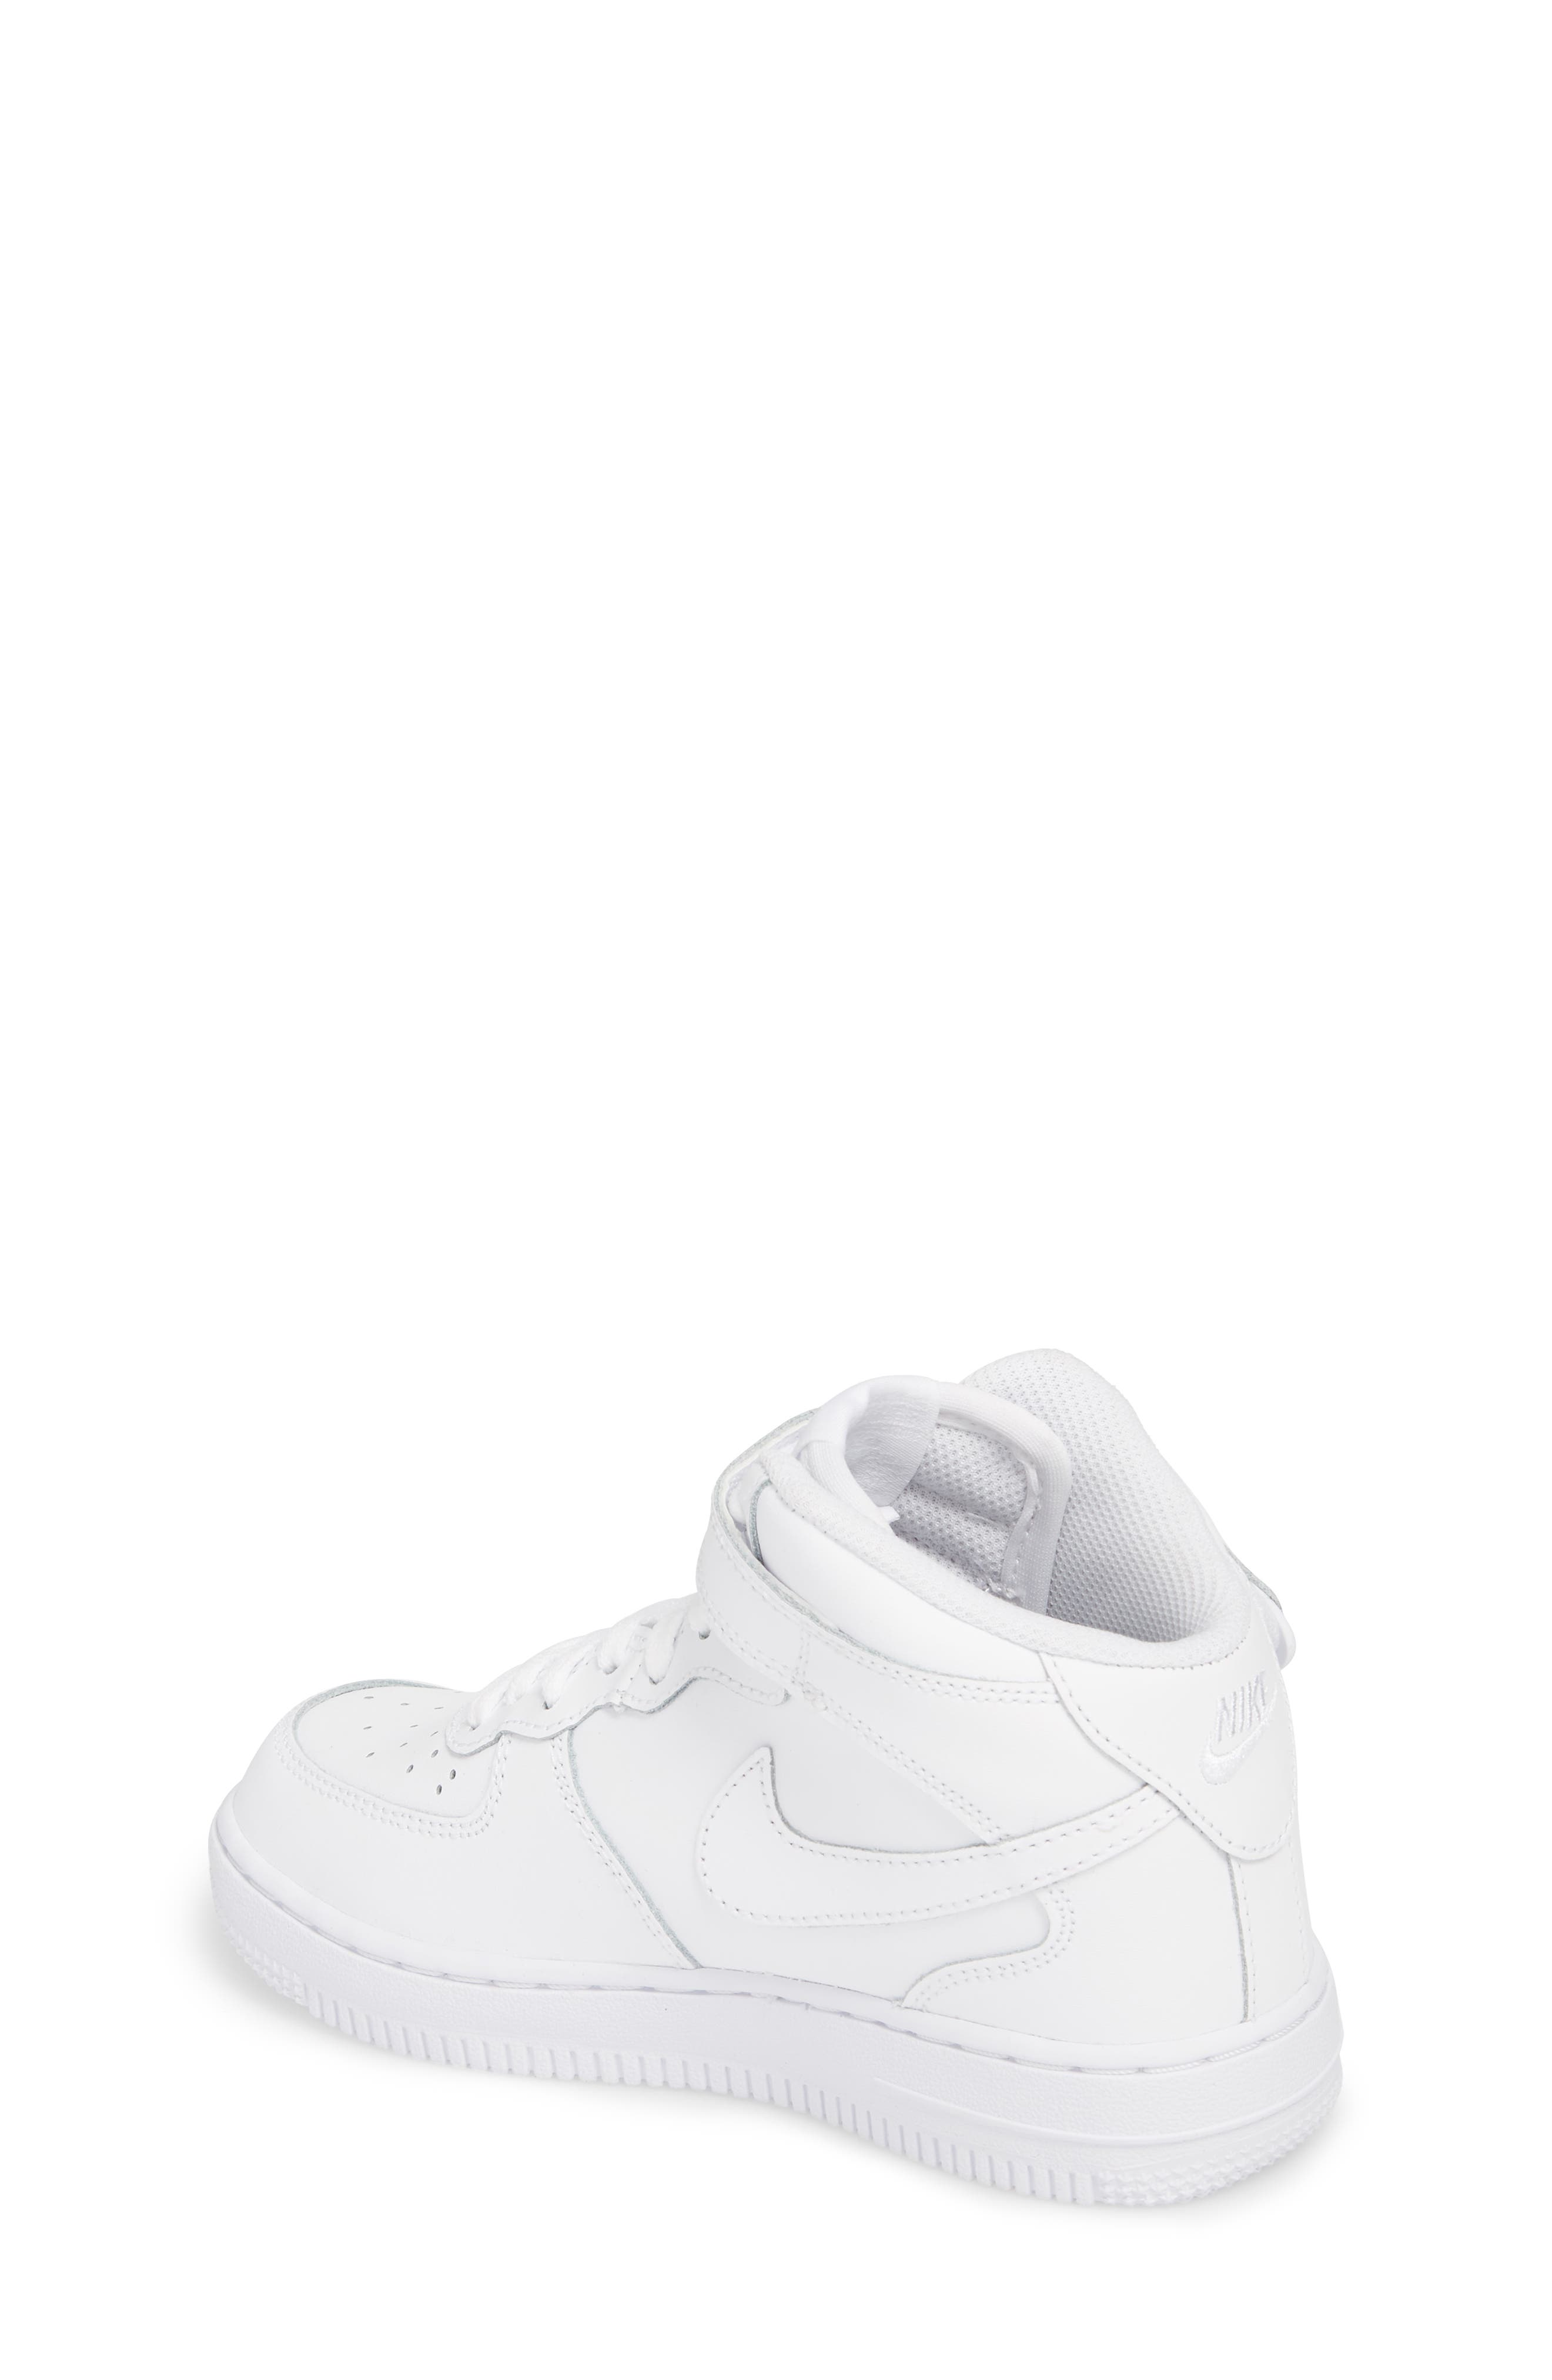 NIKE,                             Air Force 1 Mid Sneaker,                             Alternate thumbnail 2, color,                             WHITE/ WHITE